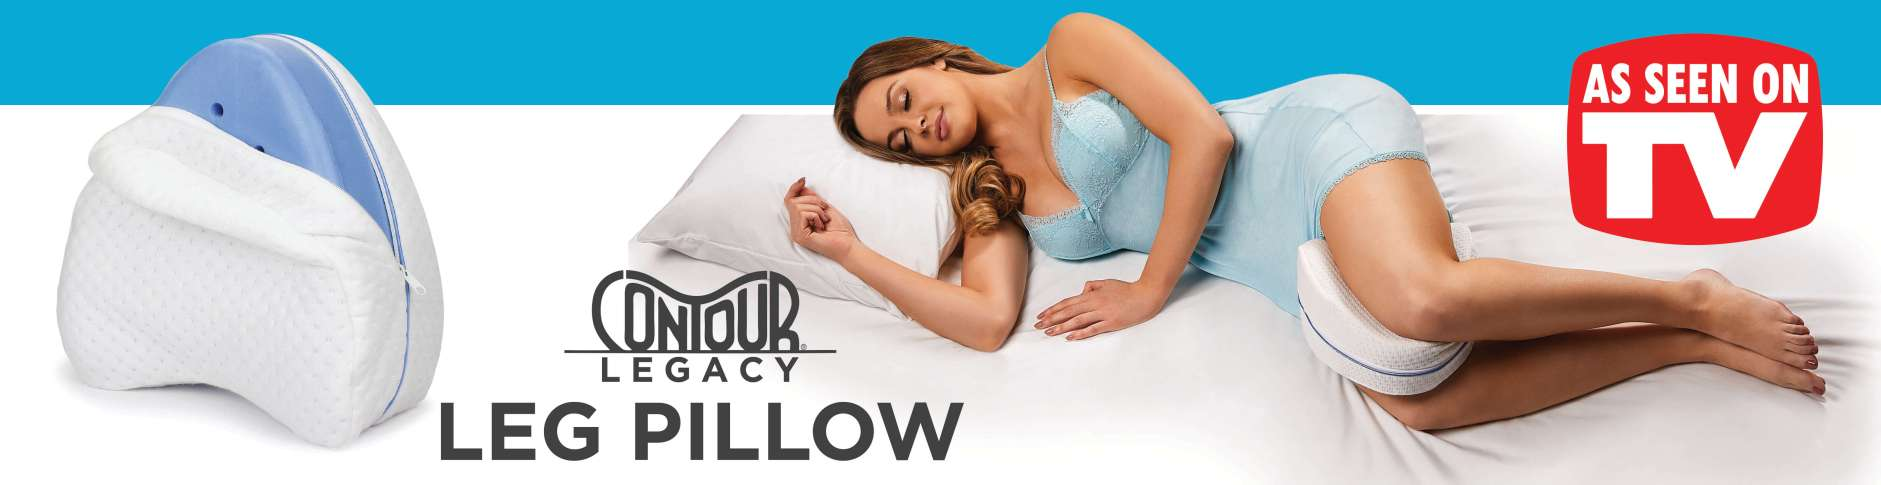 Contour Legacy Leg Pillow for Side Sleepers to help alleviate back pain, hip pain, knee pain and alignment